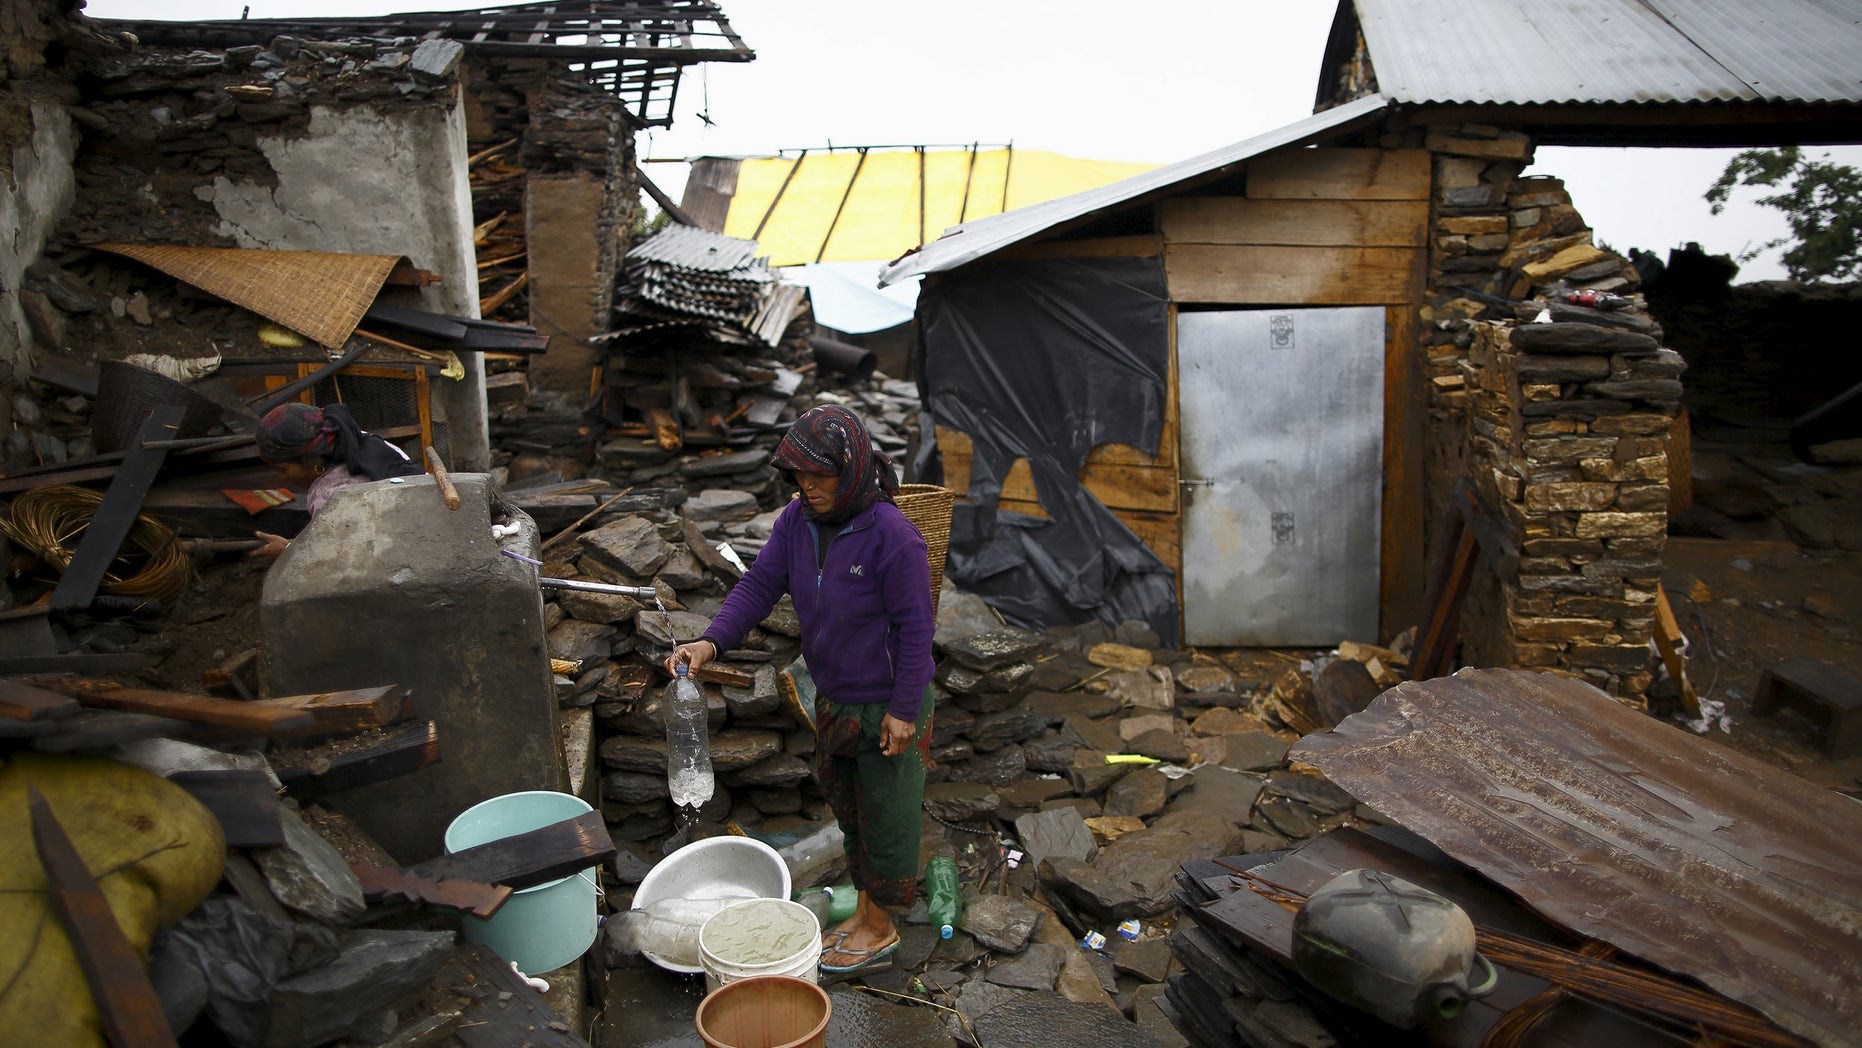 An earthquake victim fills water from a tap near the debris of a collapsed house at Barpak village at the epicenter of the April 25 earthquake in Gorkha district, Nepal, May 21, 2015. REUTERS/Navesh Chitrakar